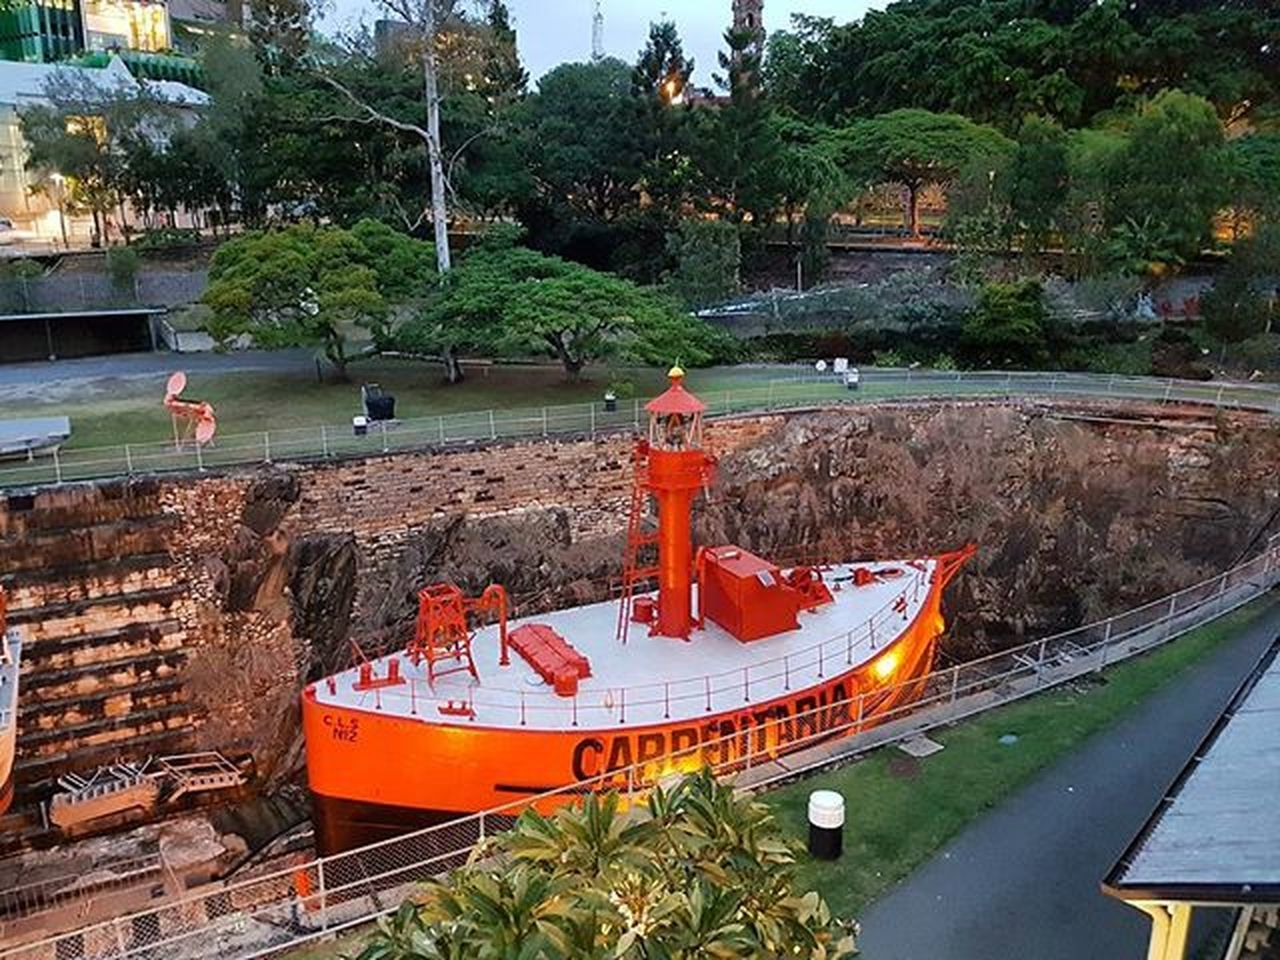 Brisbane Marines Meusem Orange Tugboat Australia Queensland Nightlife BNE City